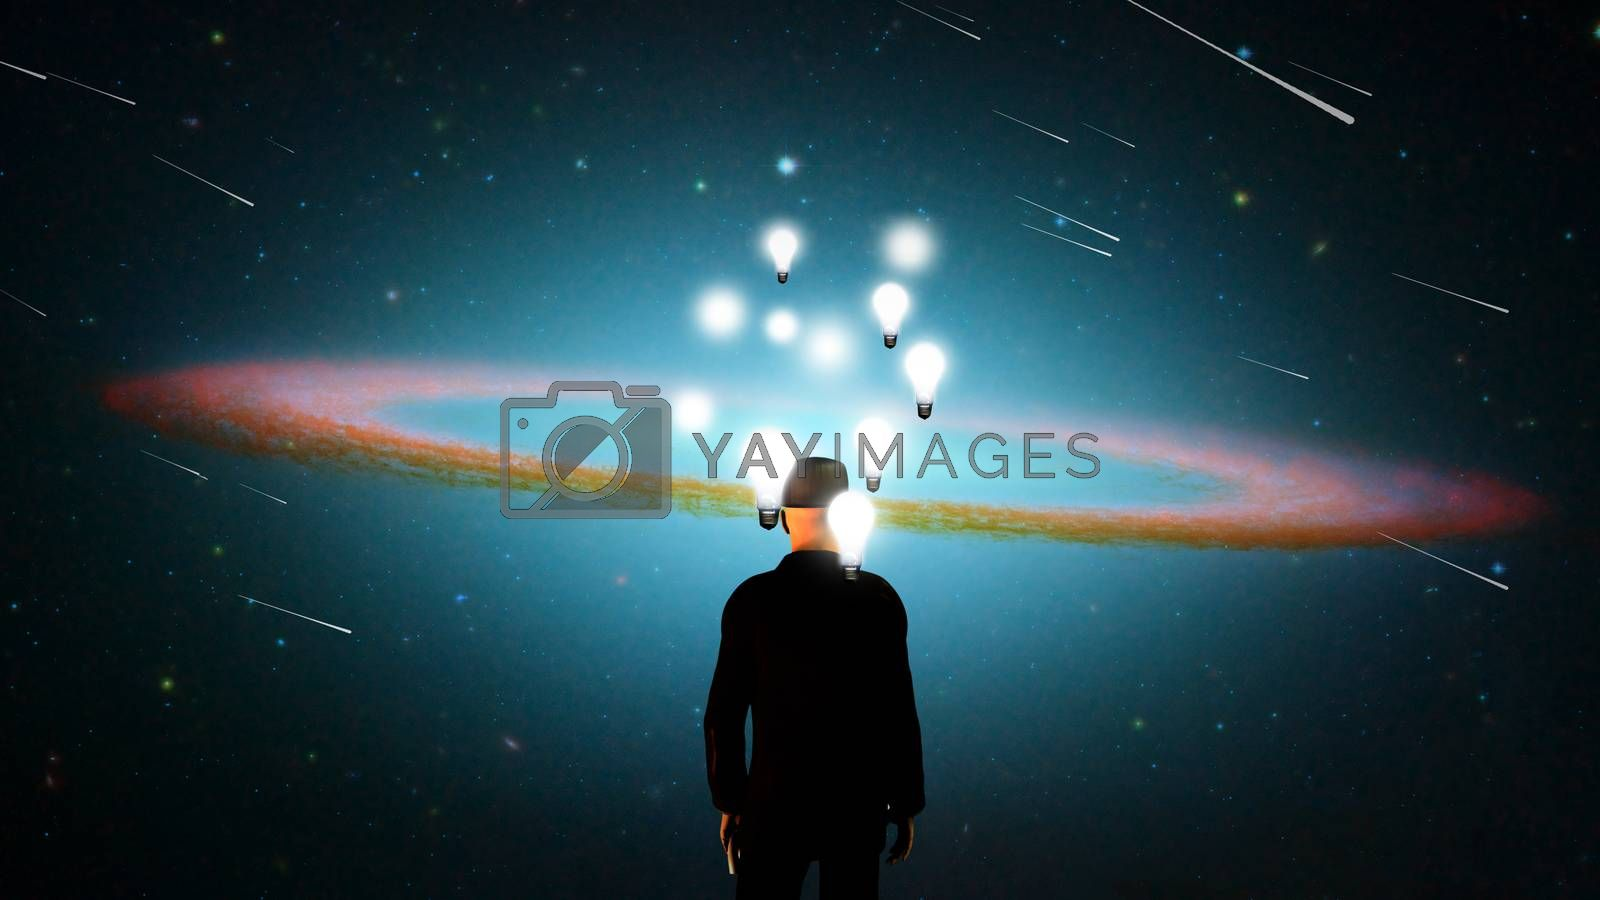 Surreal composition. Man in suit stands before vivid universe. Lightbulbs represents thoughts and ideas. 3D rendering